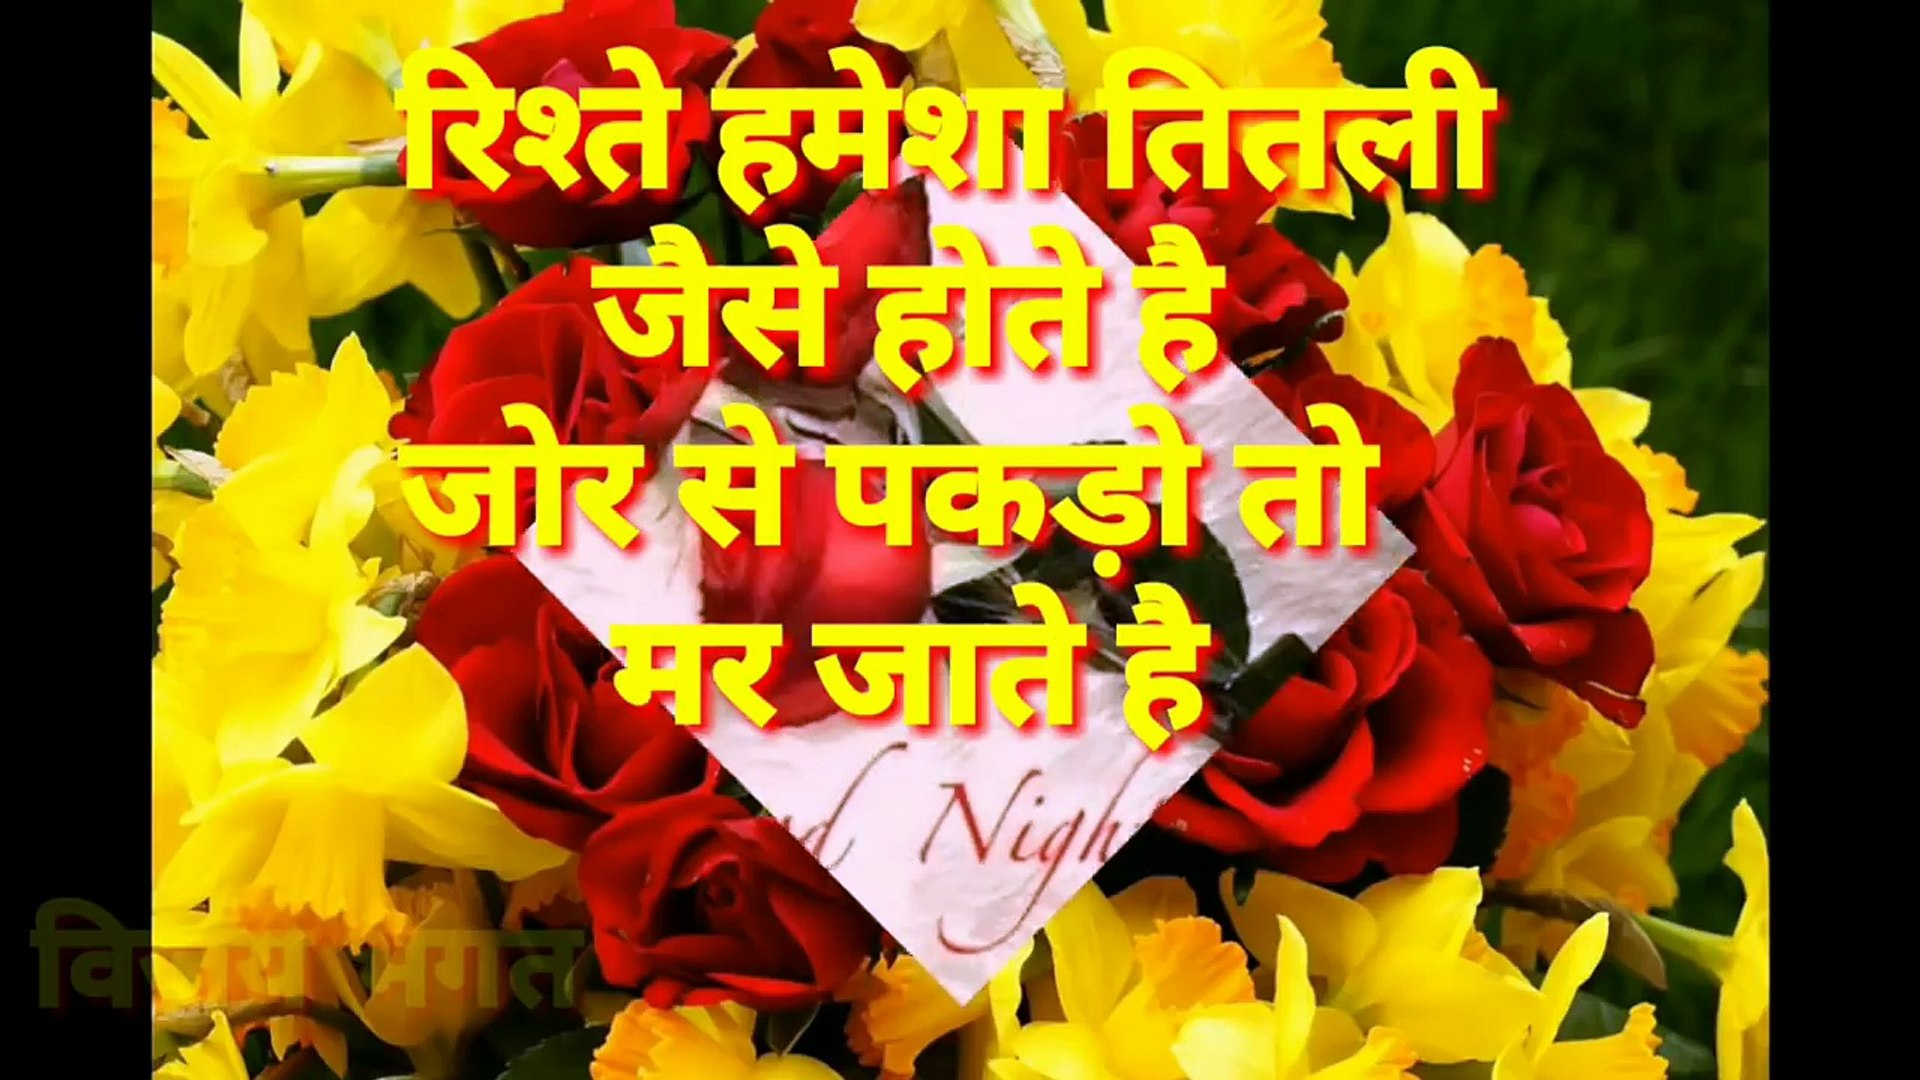 शूभ रात्री Good Night Wishes Whatsapp Video Message - Red And Yellow Roses Background , HD Wallpaper & Backgrounds